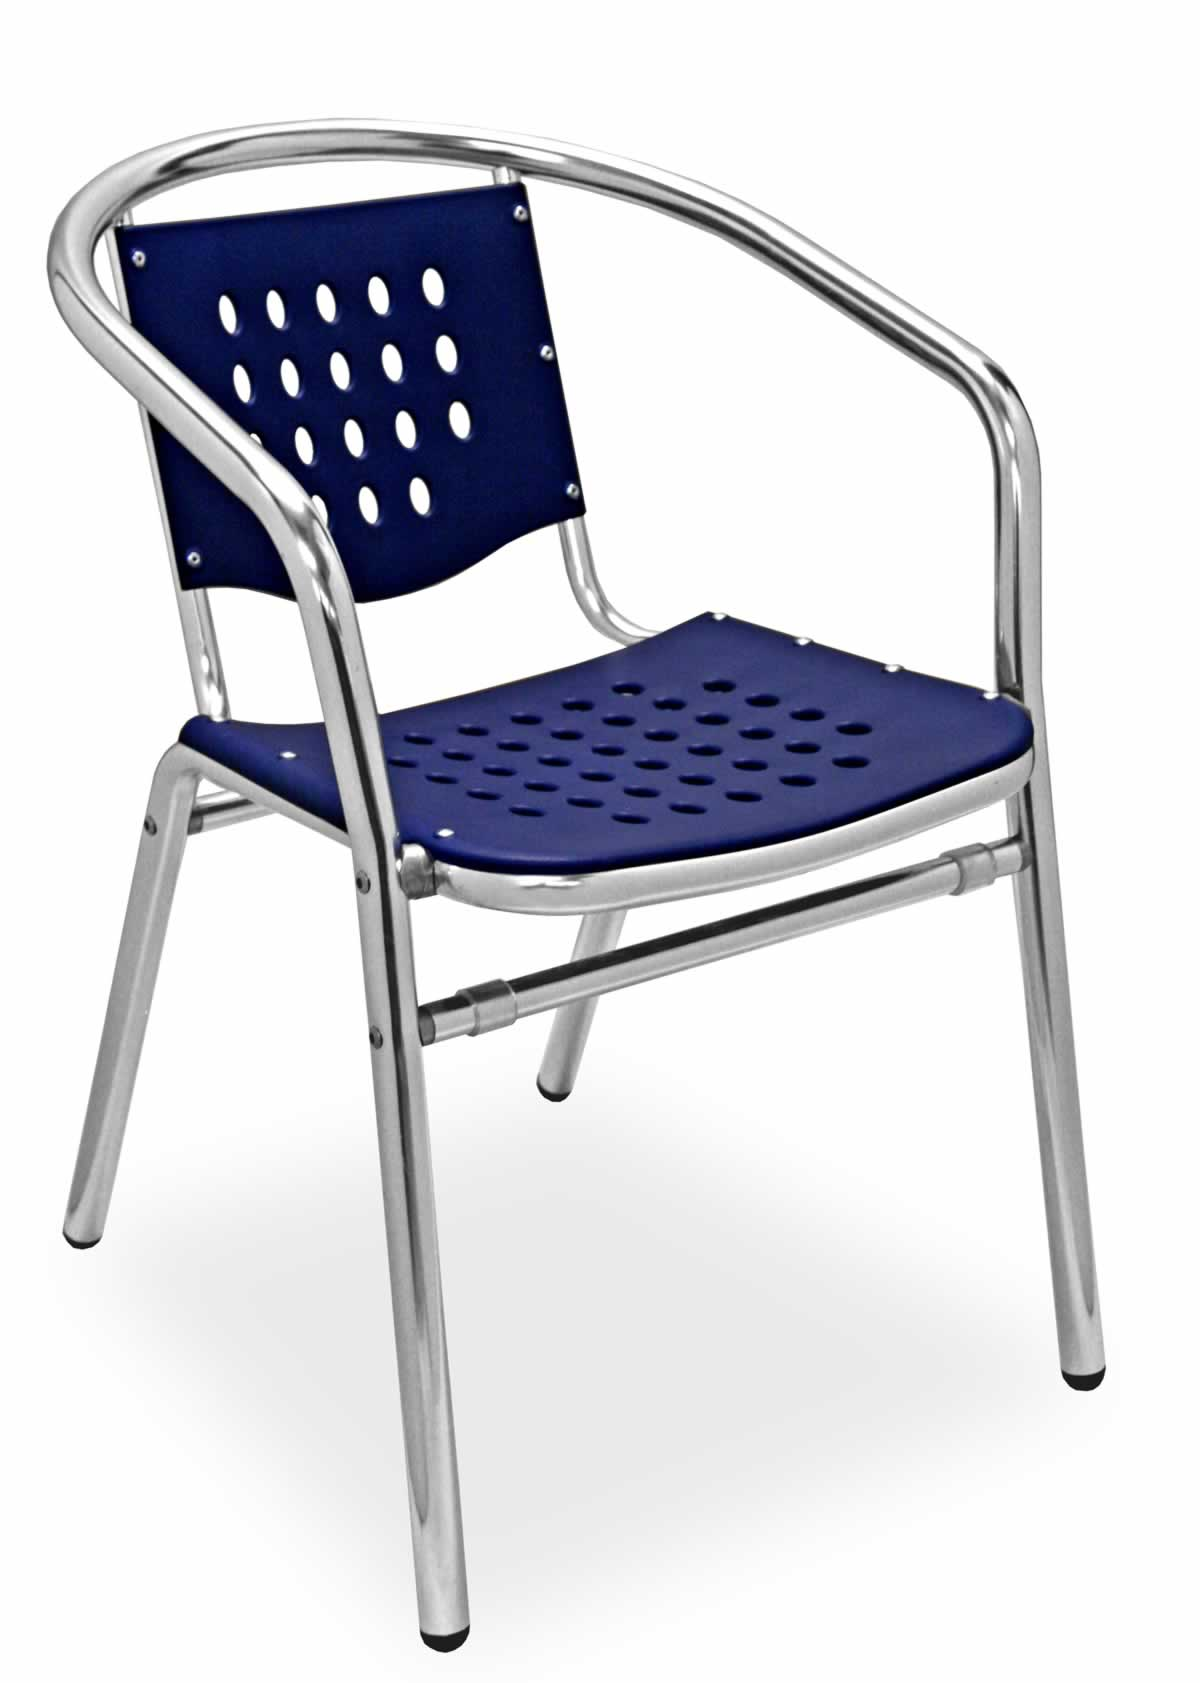 Aluminum Frame Plastic Seat Arm Chair Sa03c Commercial